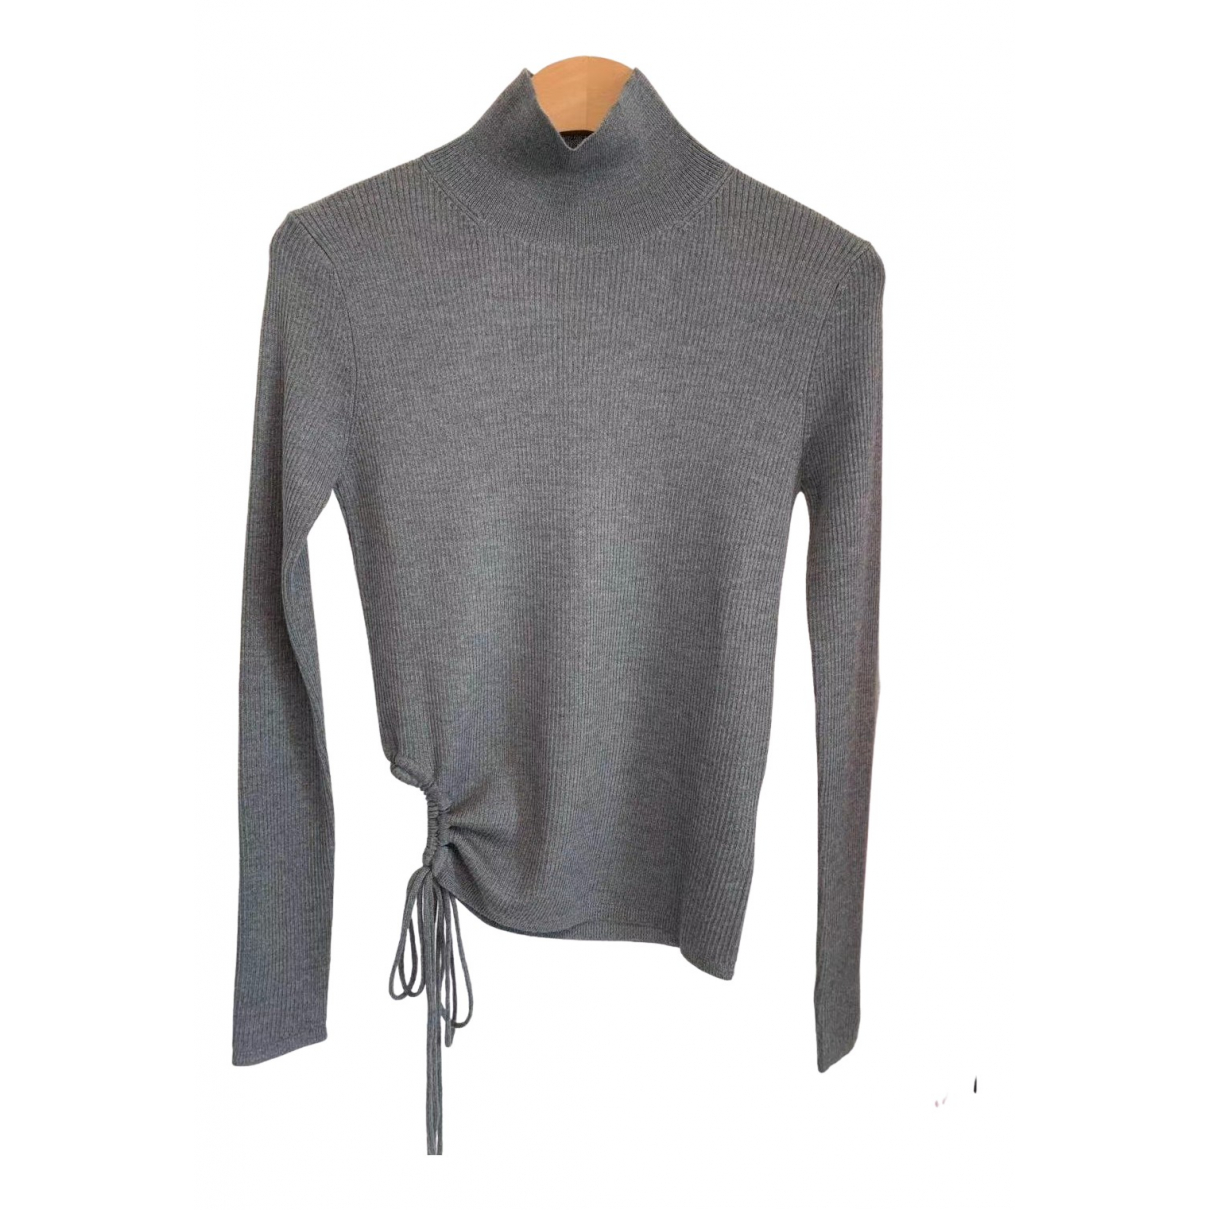 Alexander Wang N Grey Wool Knitwear for Women M International